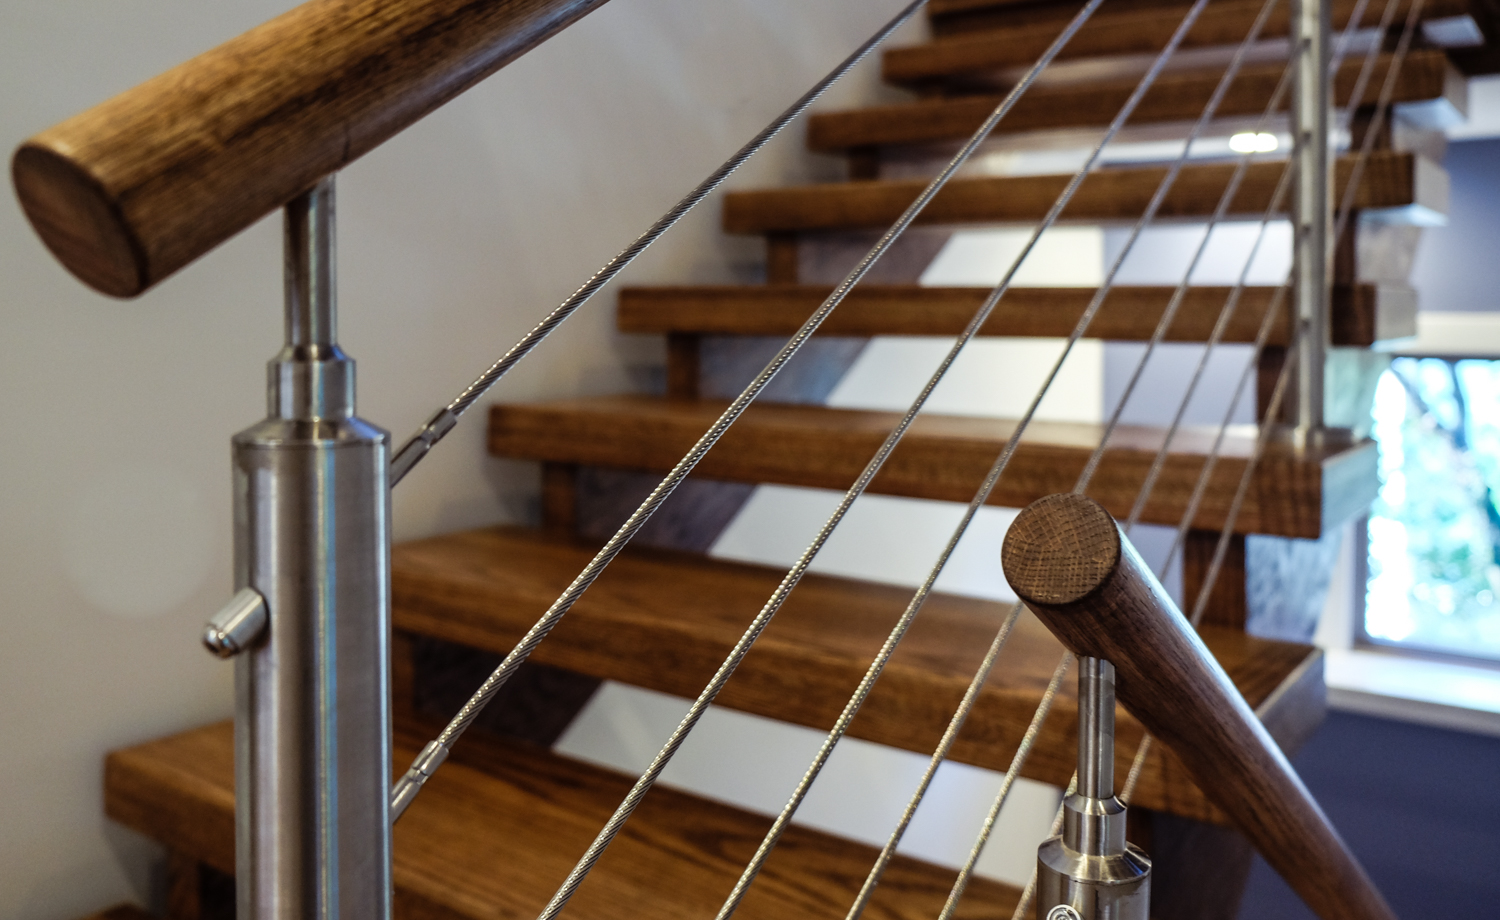 Cable Railing Systems A Versatile Design Choice